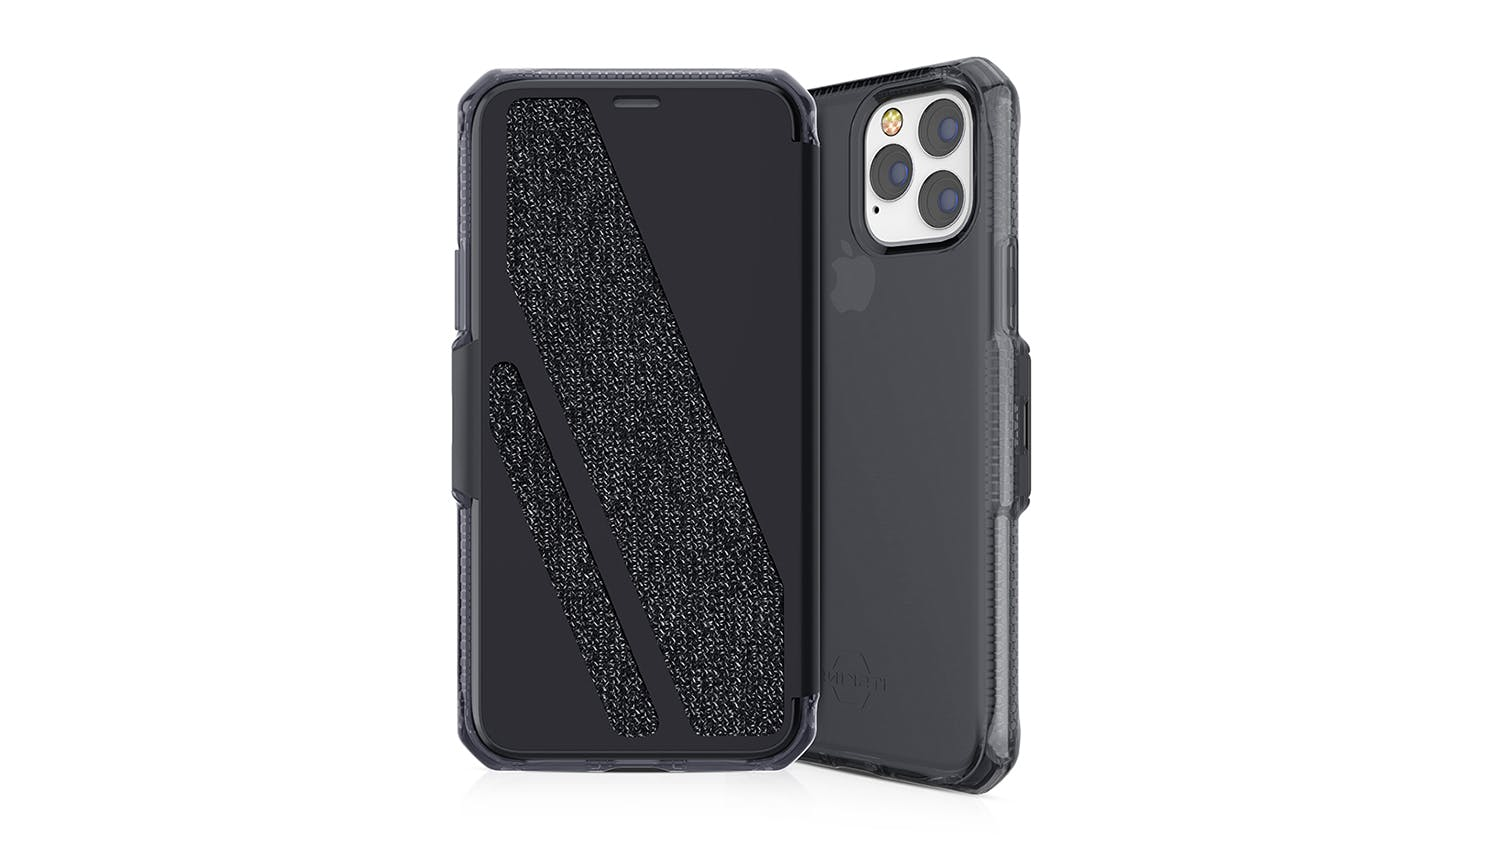 ITSKINS Spectrum Folio Case for iPhone 11 Pro - Black